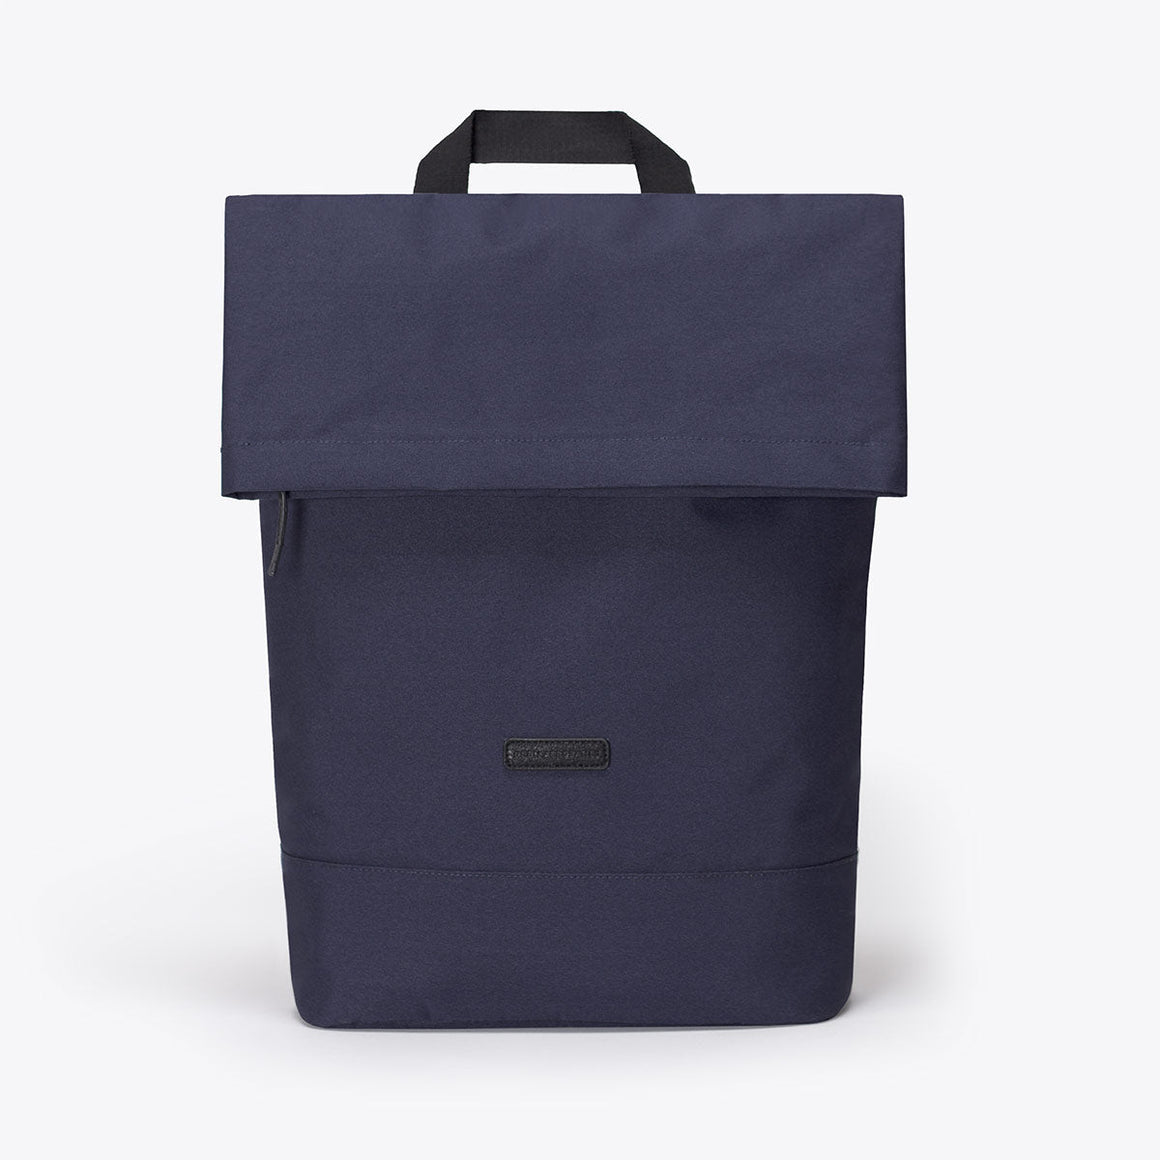 Ucon Acrobatics • Karlo Backpack • Stealth Series (Dark Navy)